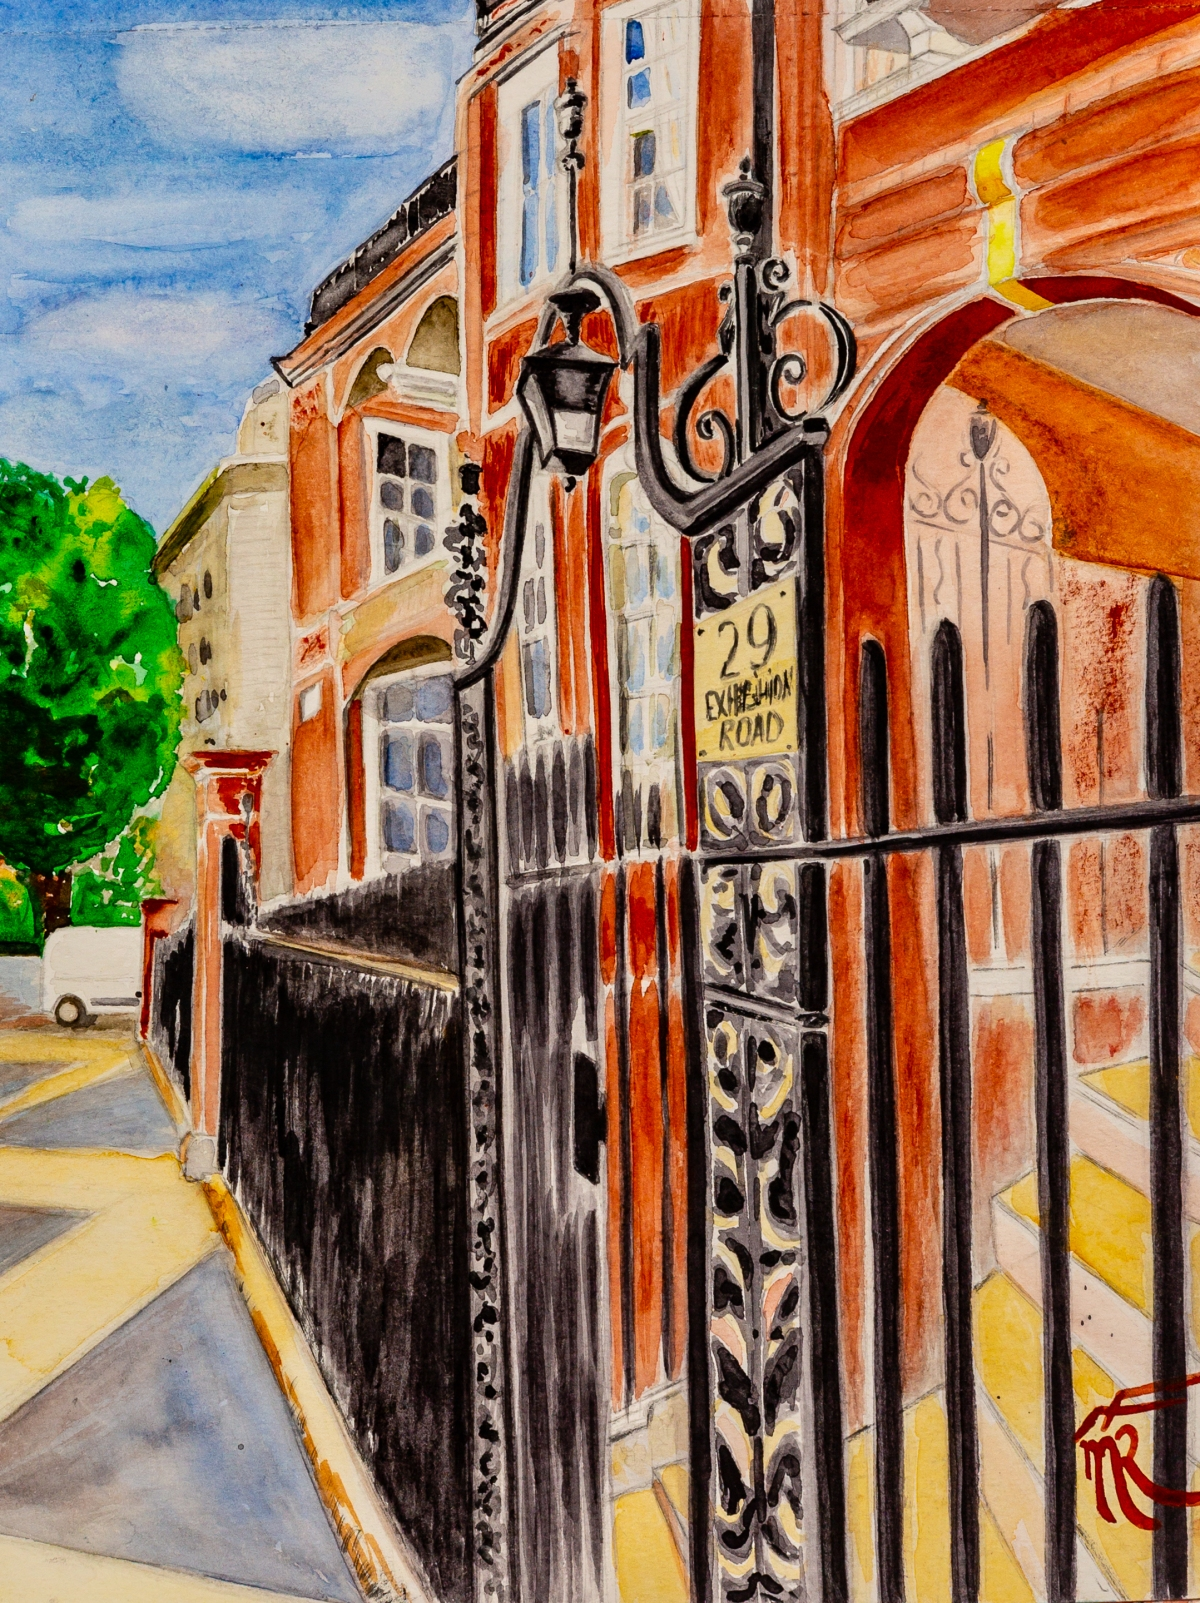 London exhition road 29 1, watercolor, 2018.jpg